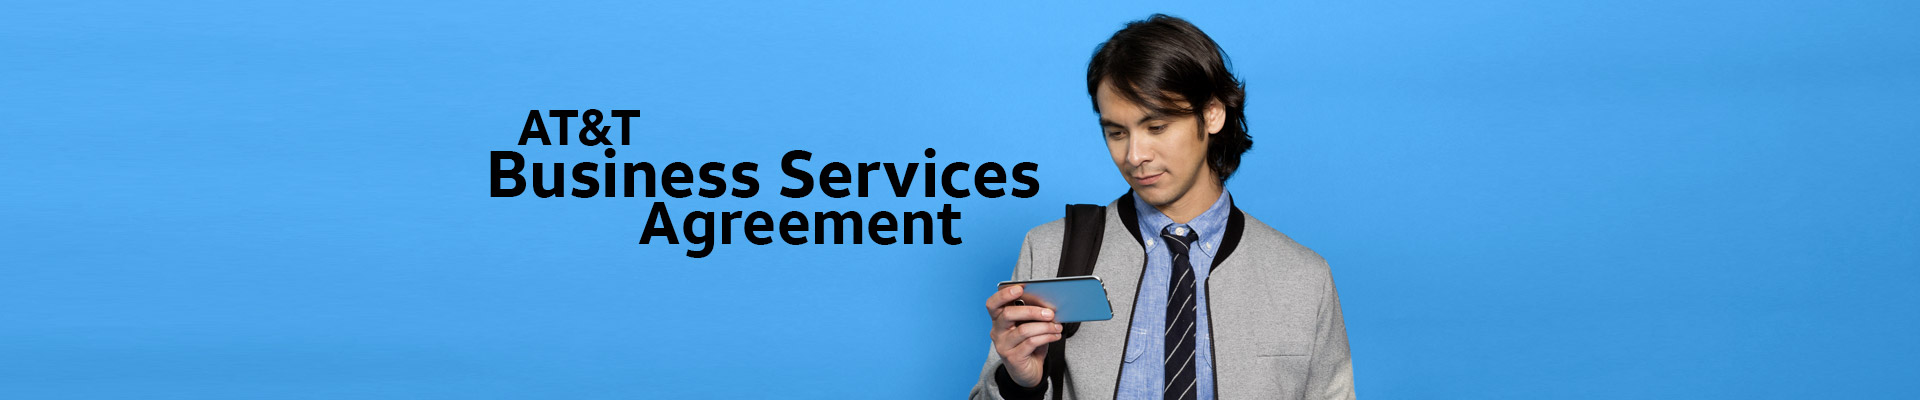 AT&T Business Services Agreement